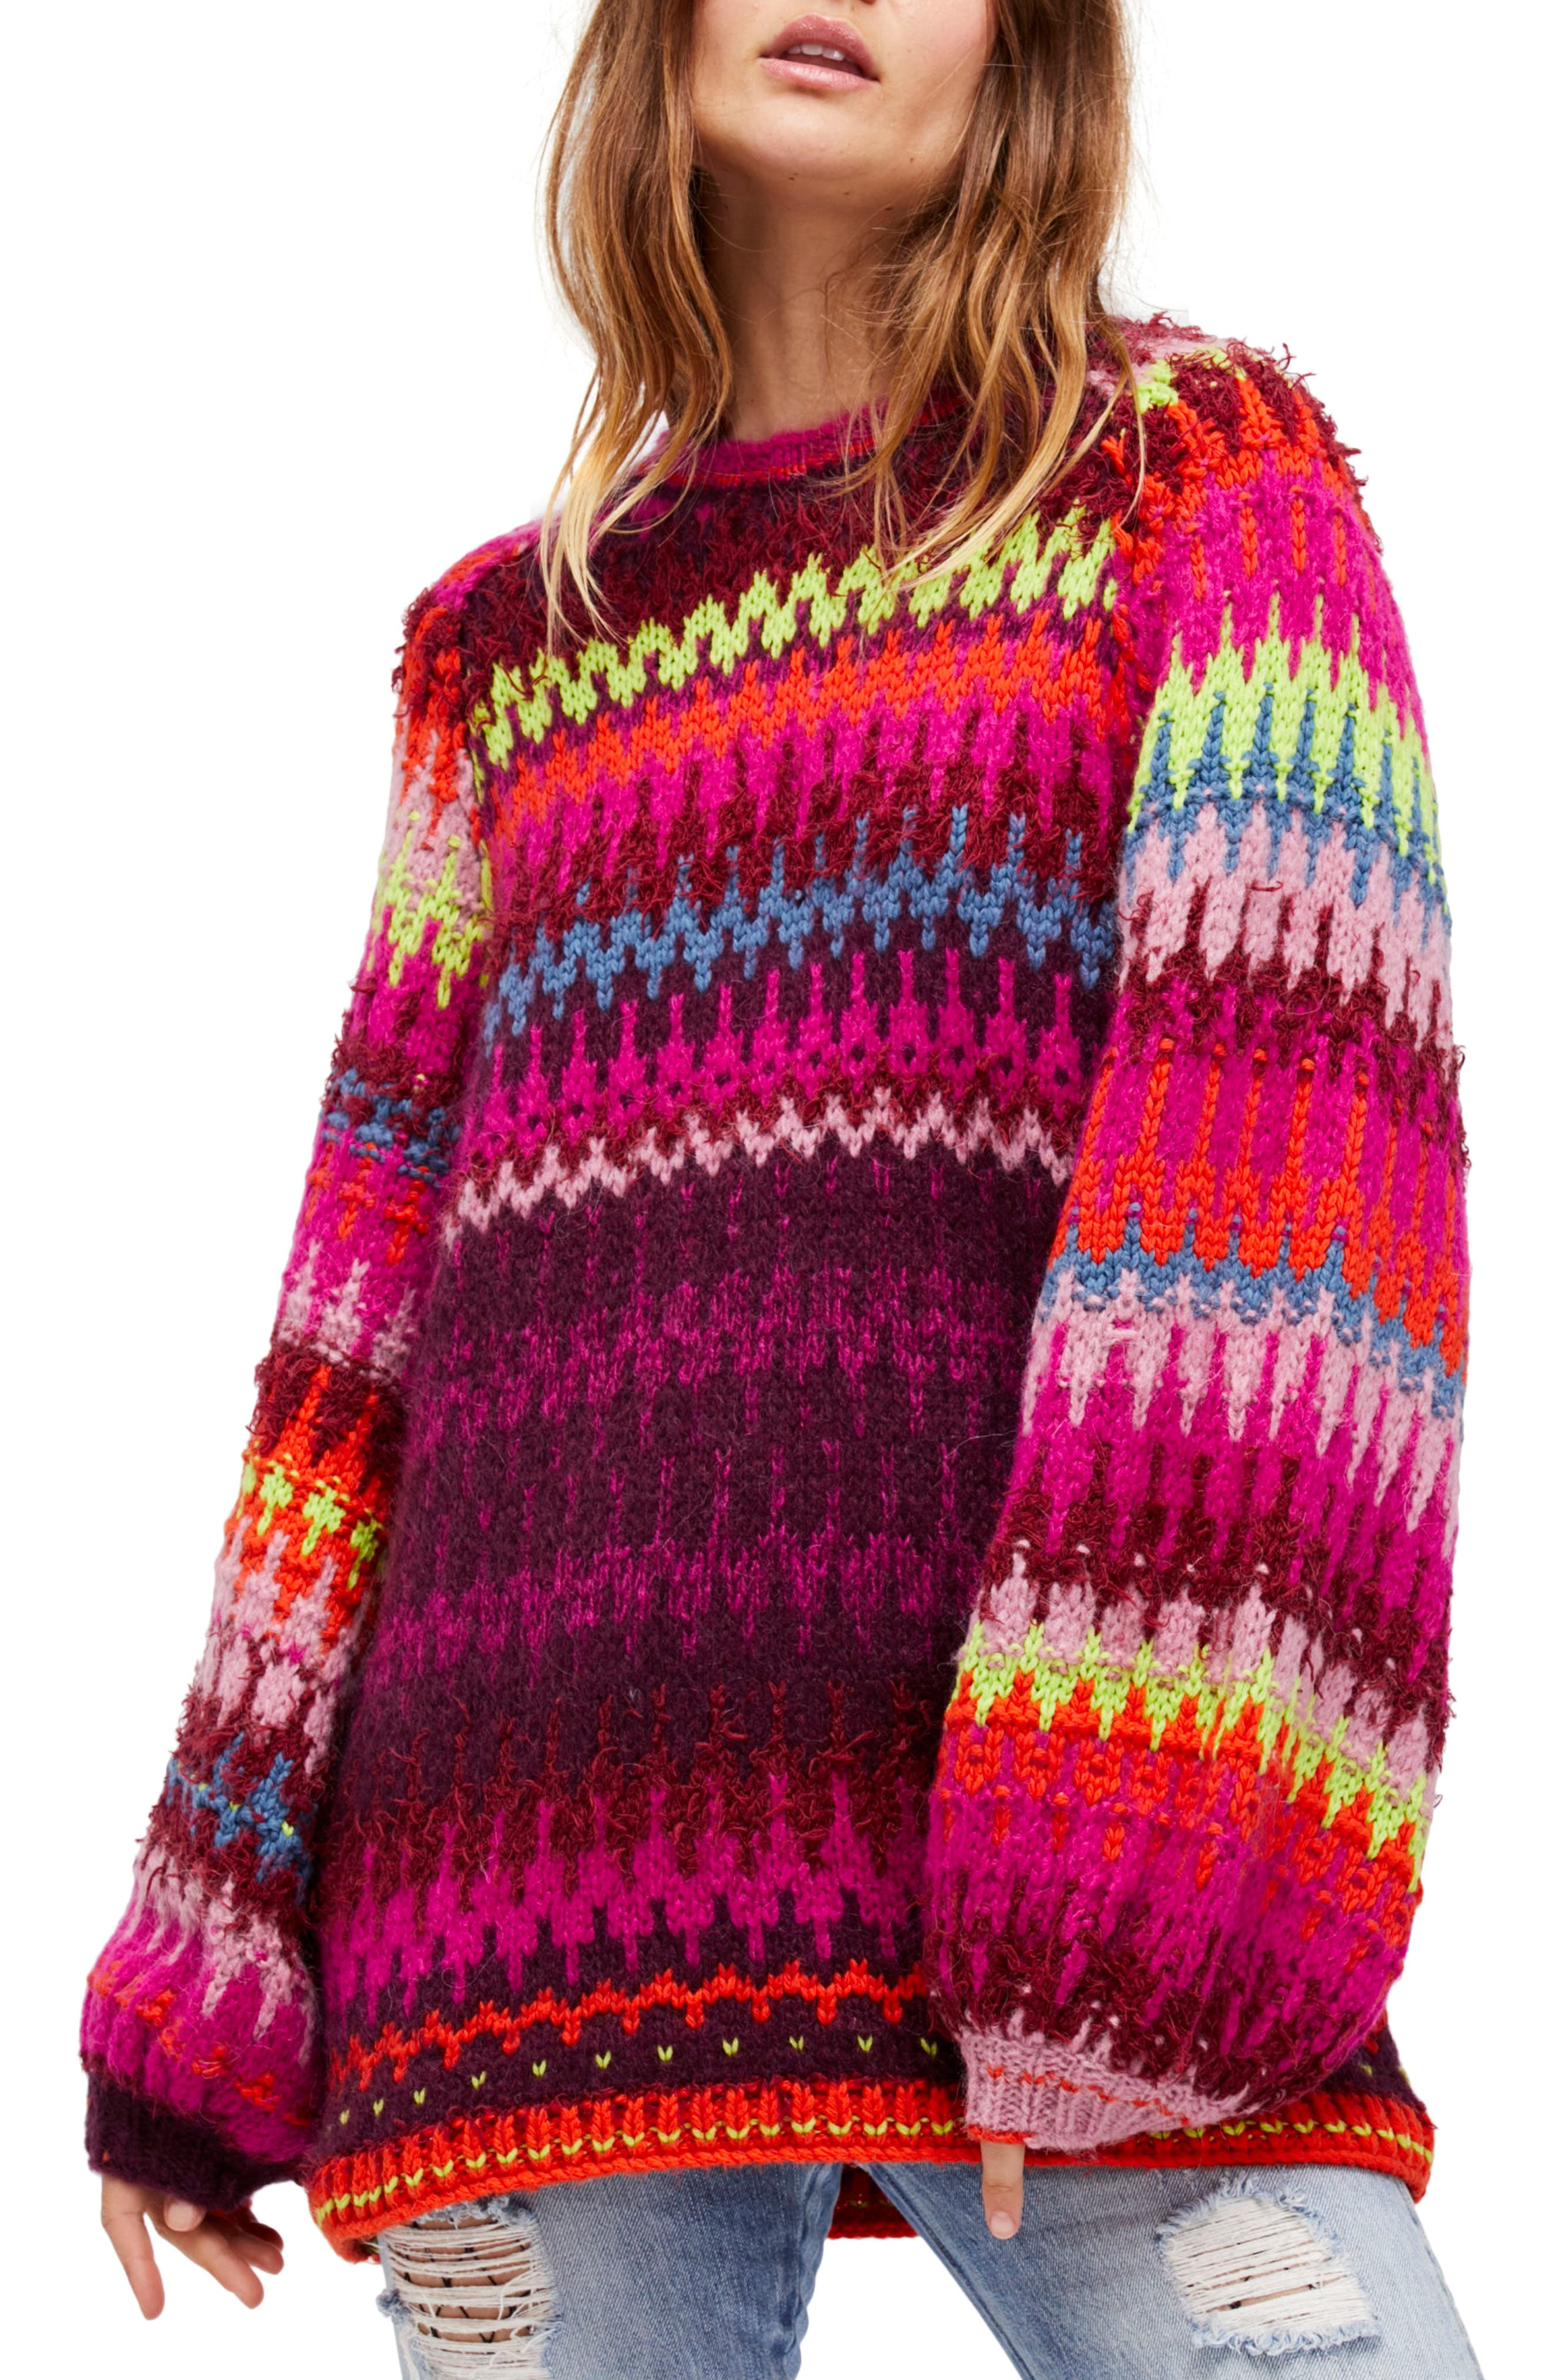 Castles in the Sky Sweater,                             Main thumbnail 1, color,                             697